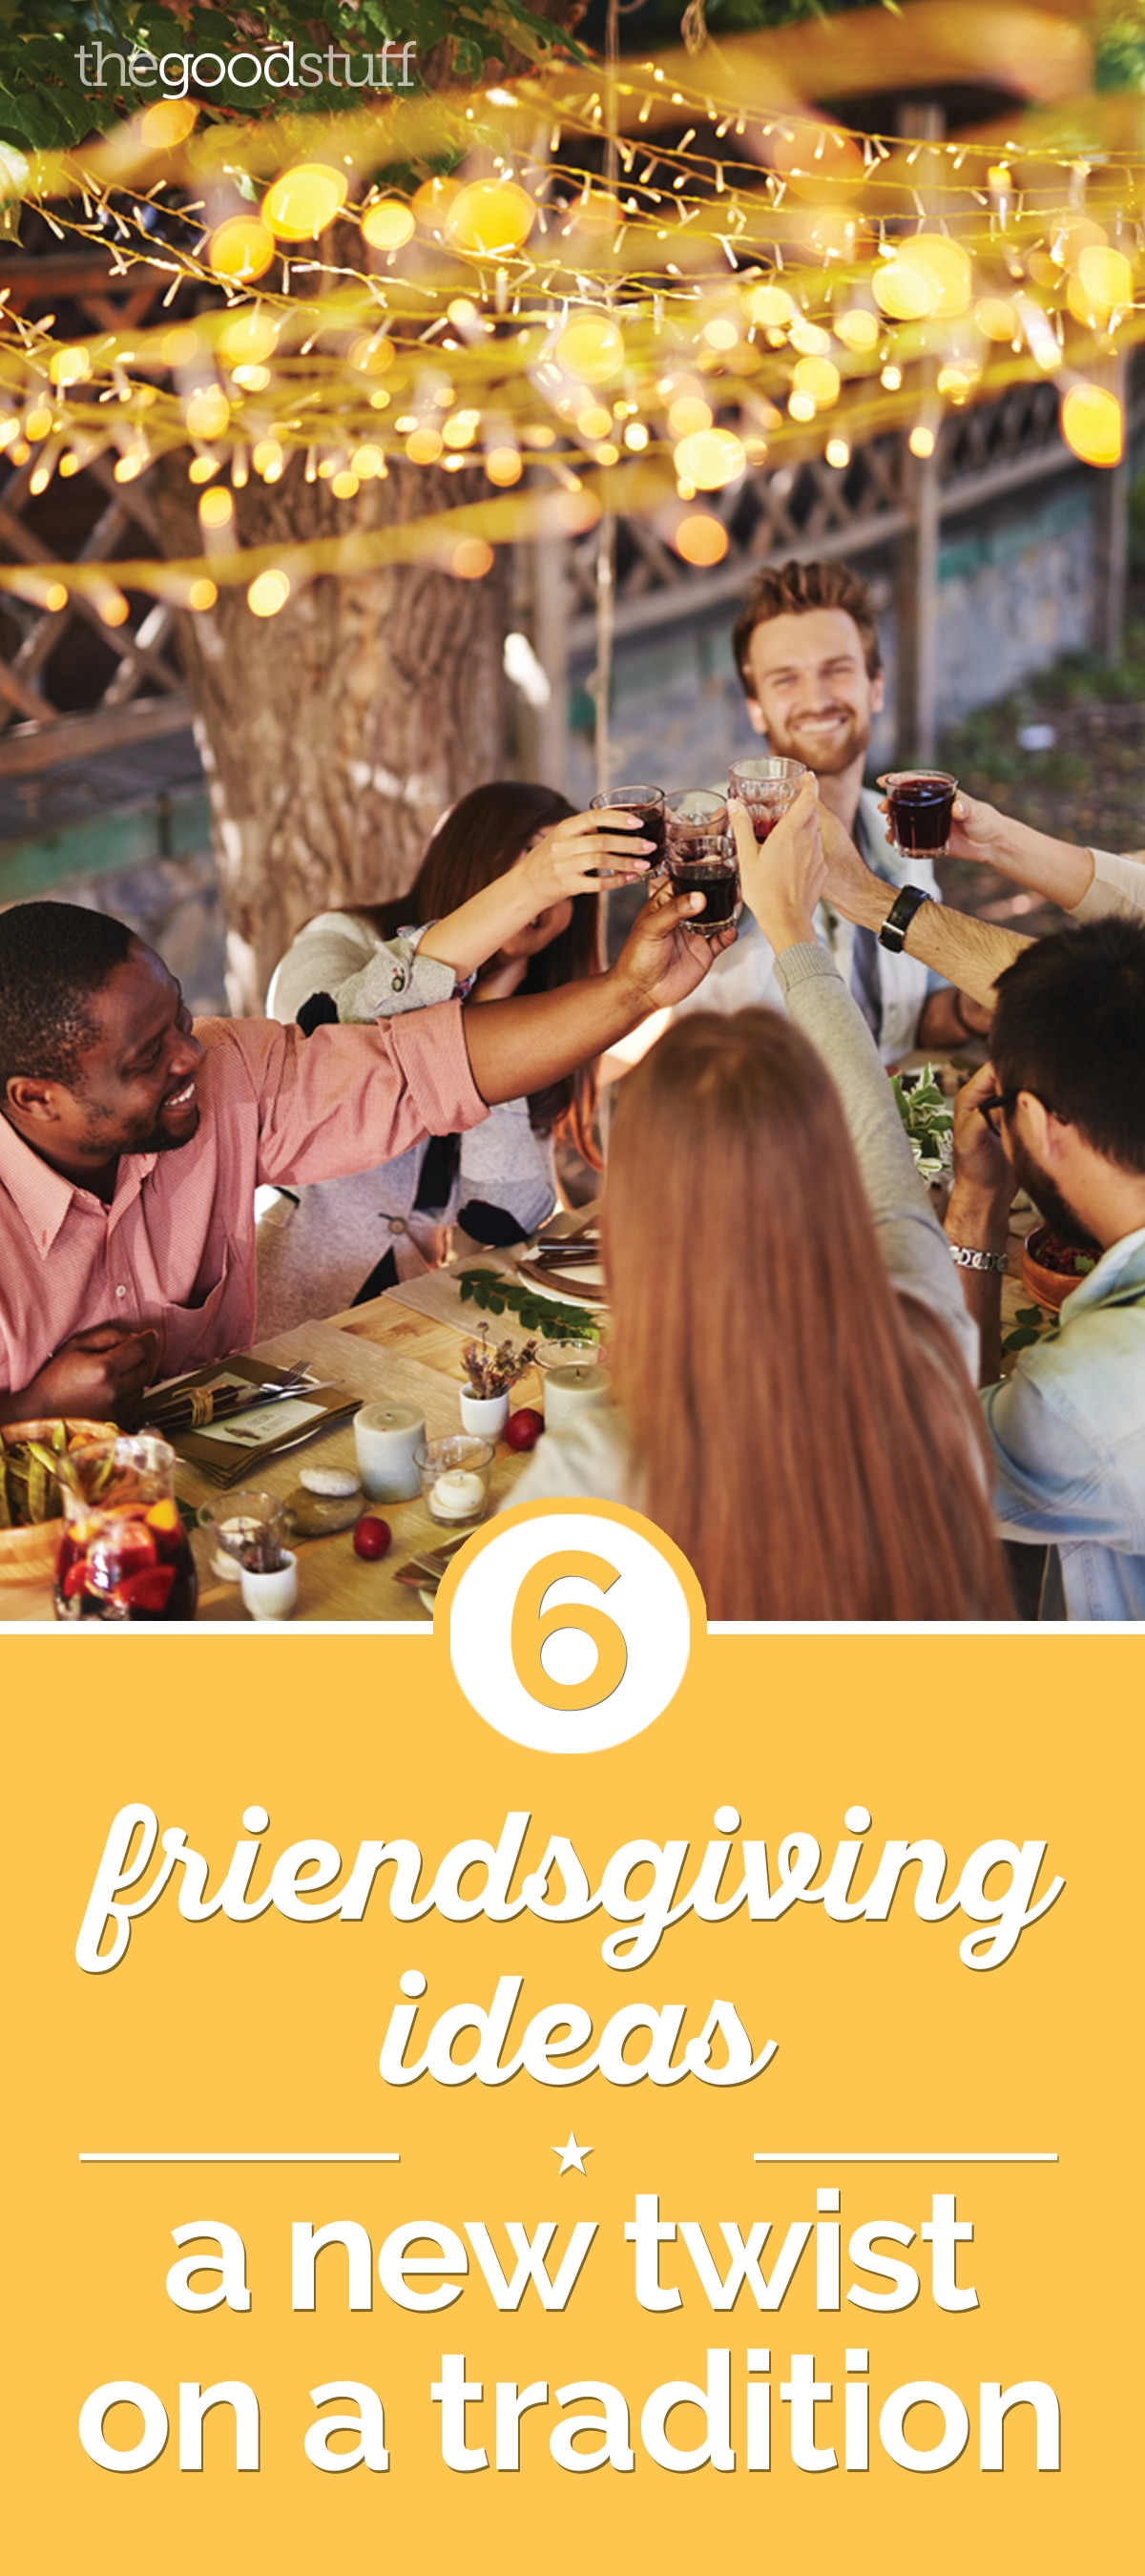 6 Friendsgiving Ideas: A New Twist on Tradition! | thegoodstuff